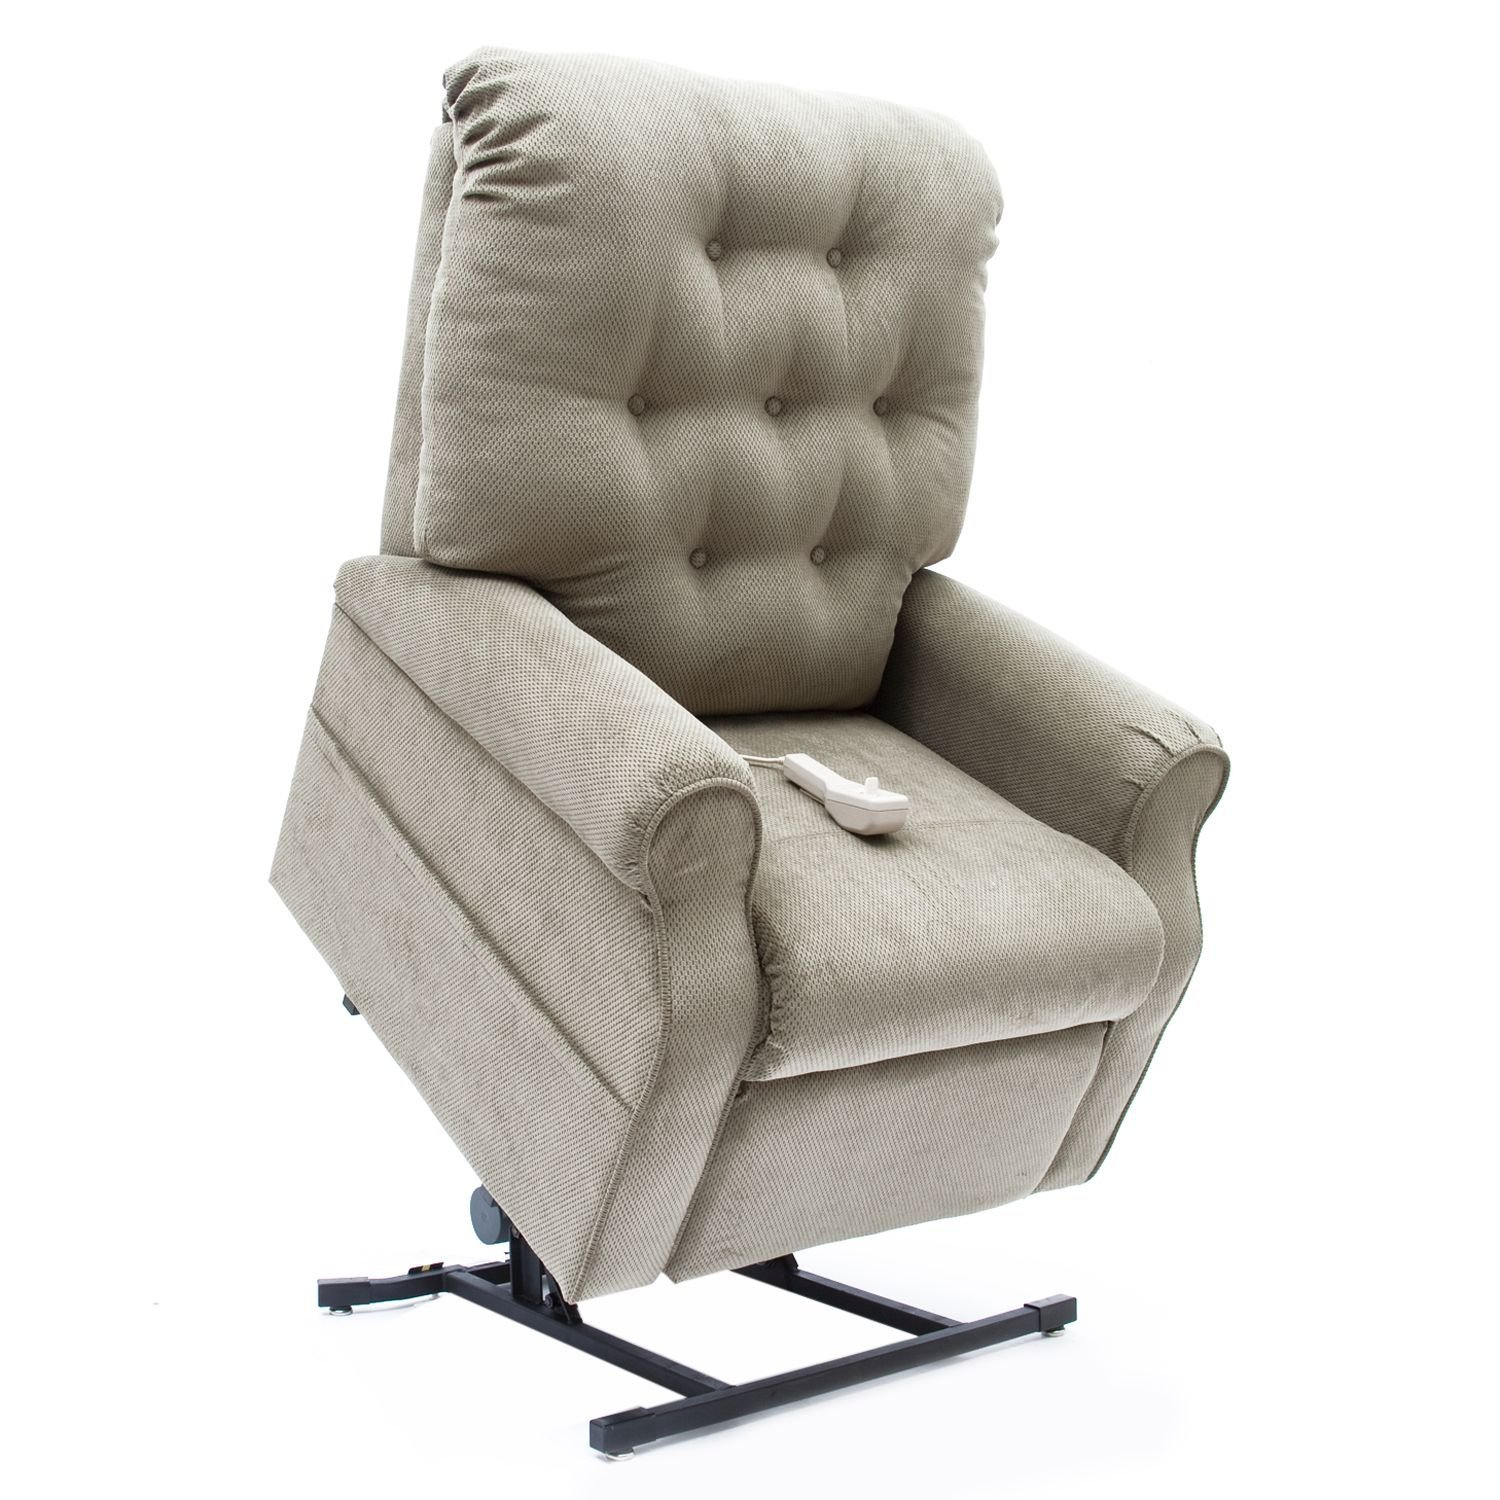 Amazon 3 Position Lift Chair with Chaise Pad Color Chocolate